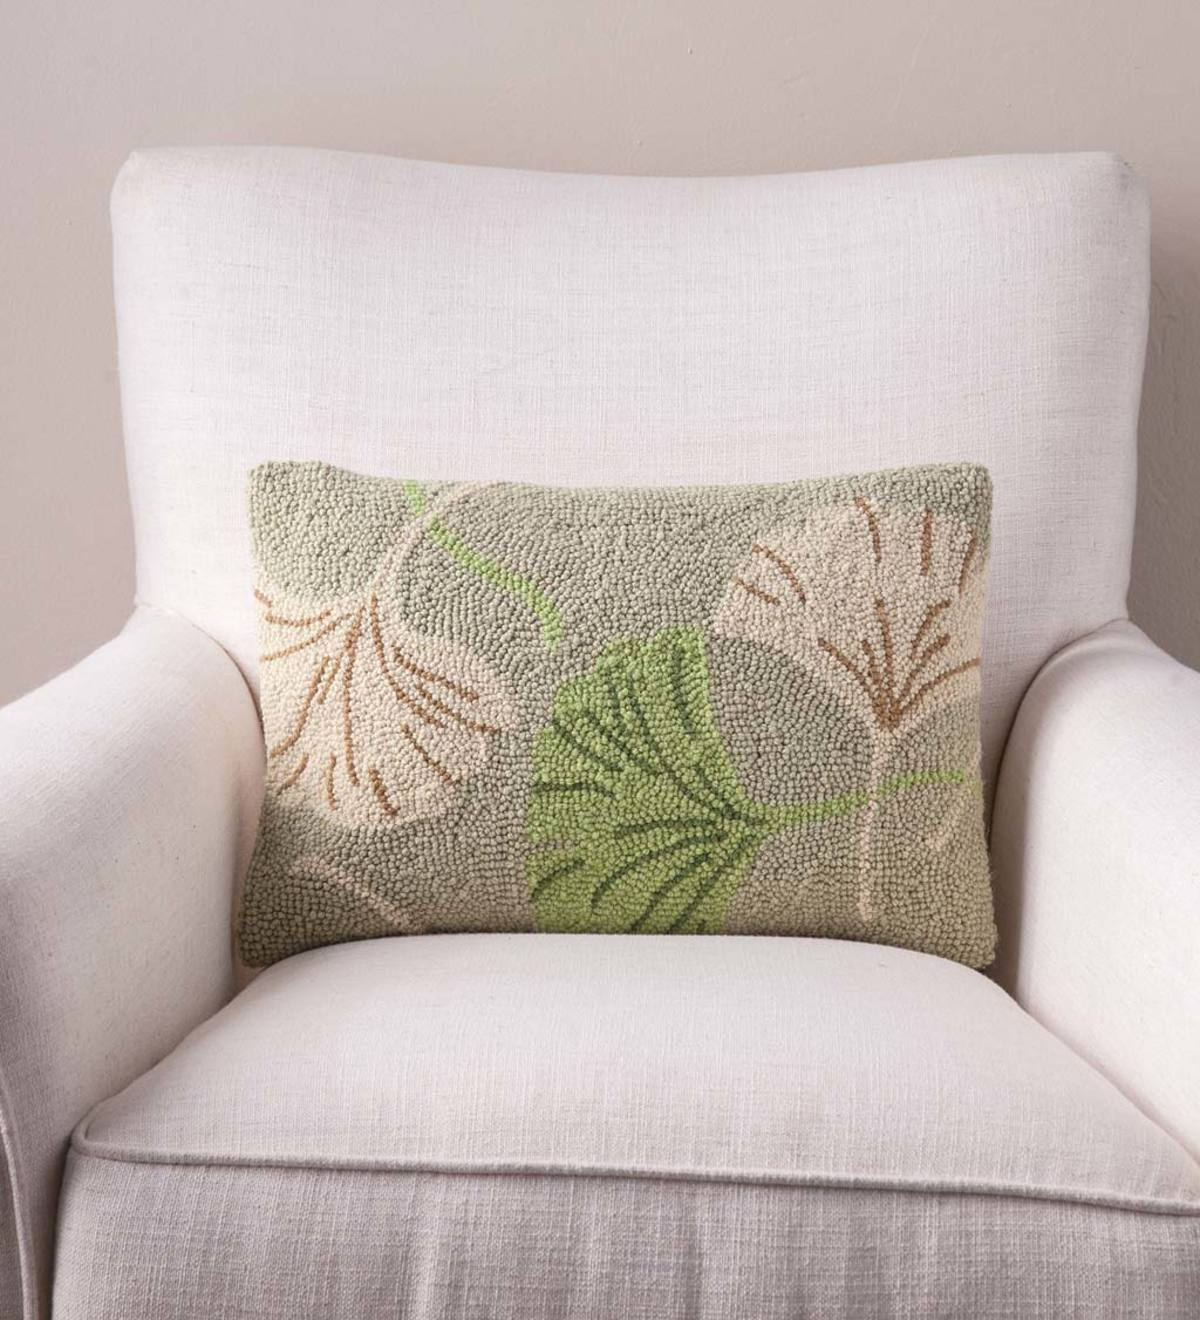 Hand Hooked Ginkgo Leaf Pillows - 12 x 12